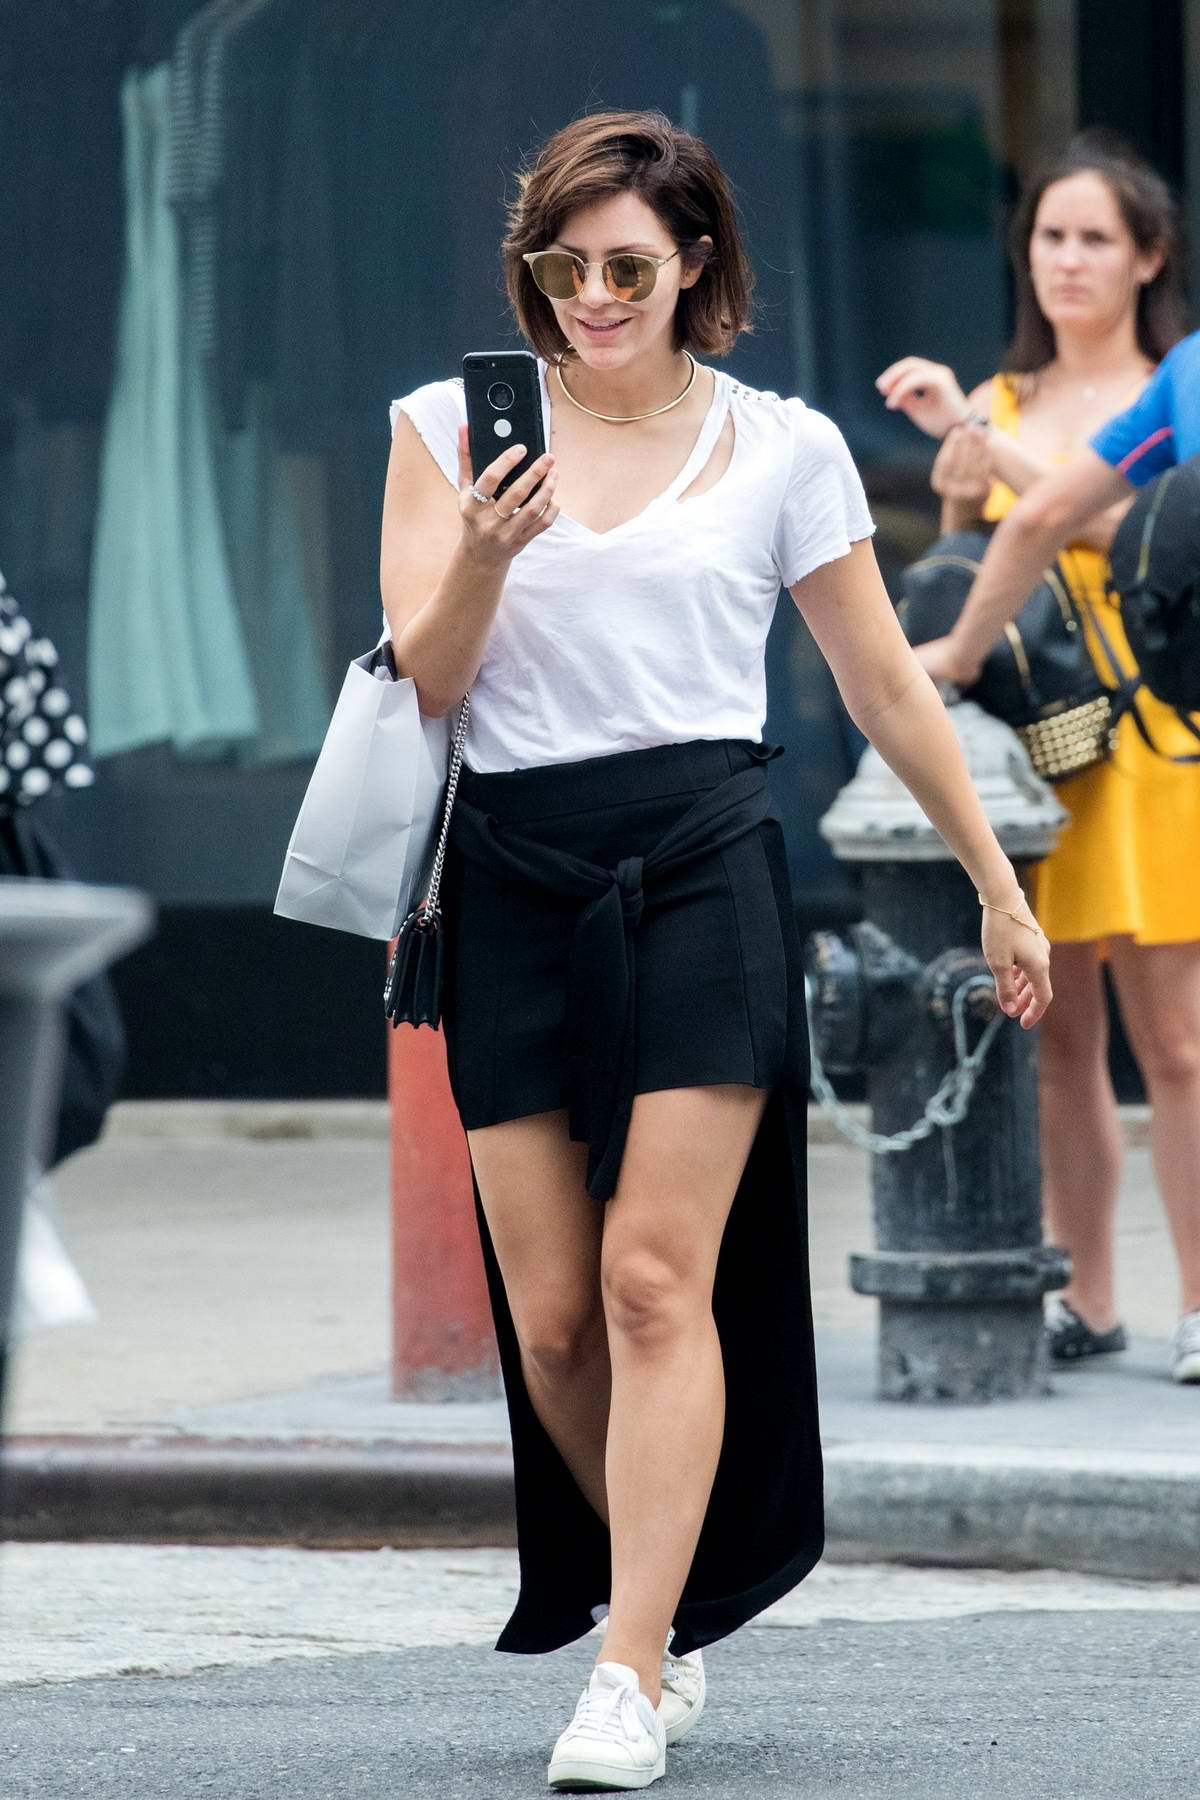 Katharine McPhee is color-coordinated in a white top, short black skirts with white sneakers as she steps out for shopping in New York City